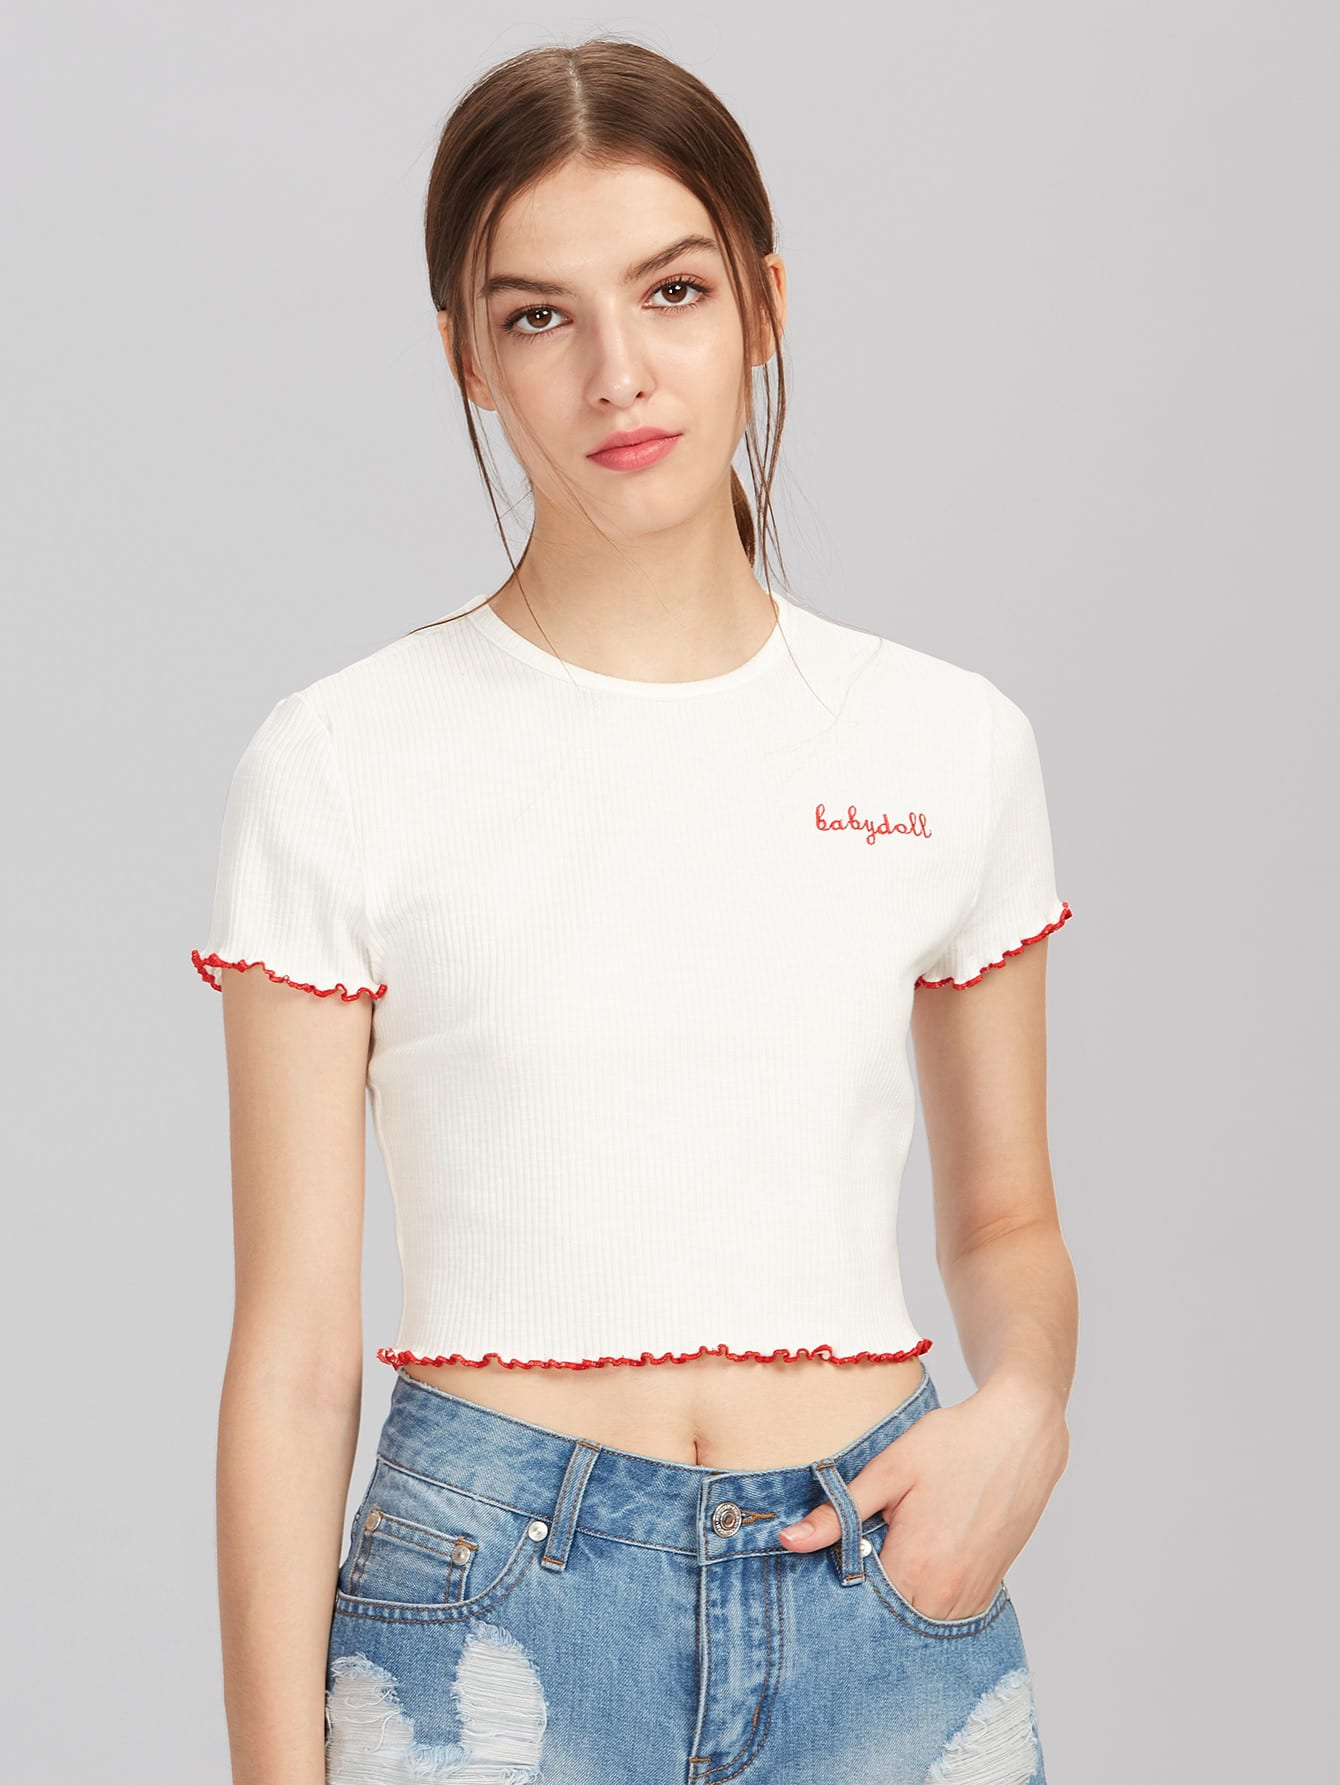 Lettuce Hem Edge Rib Knit Embroidered Tee tee170626703